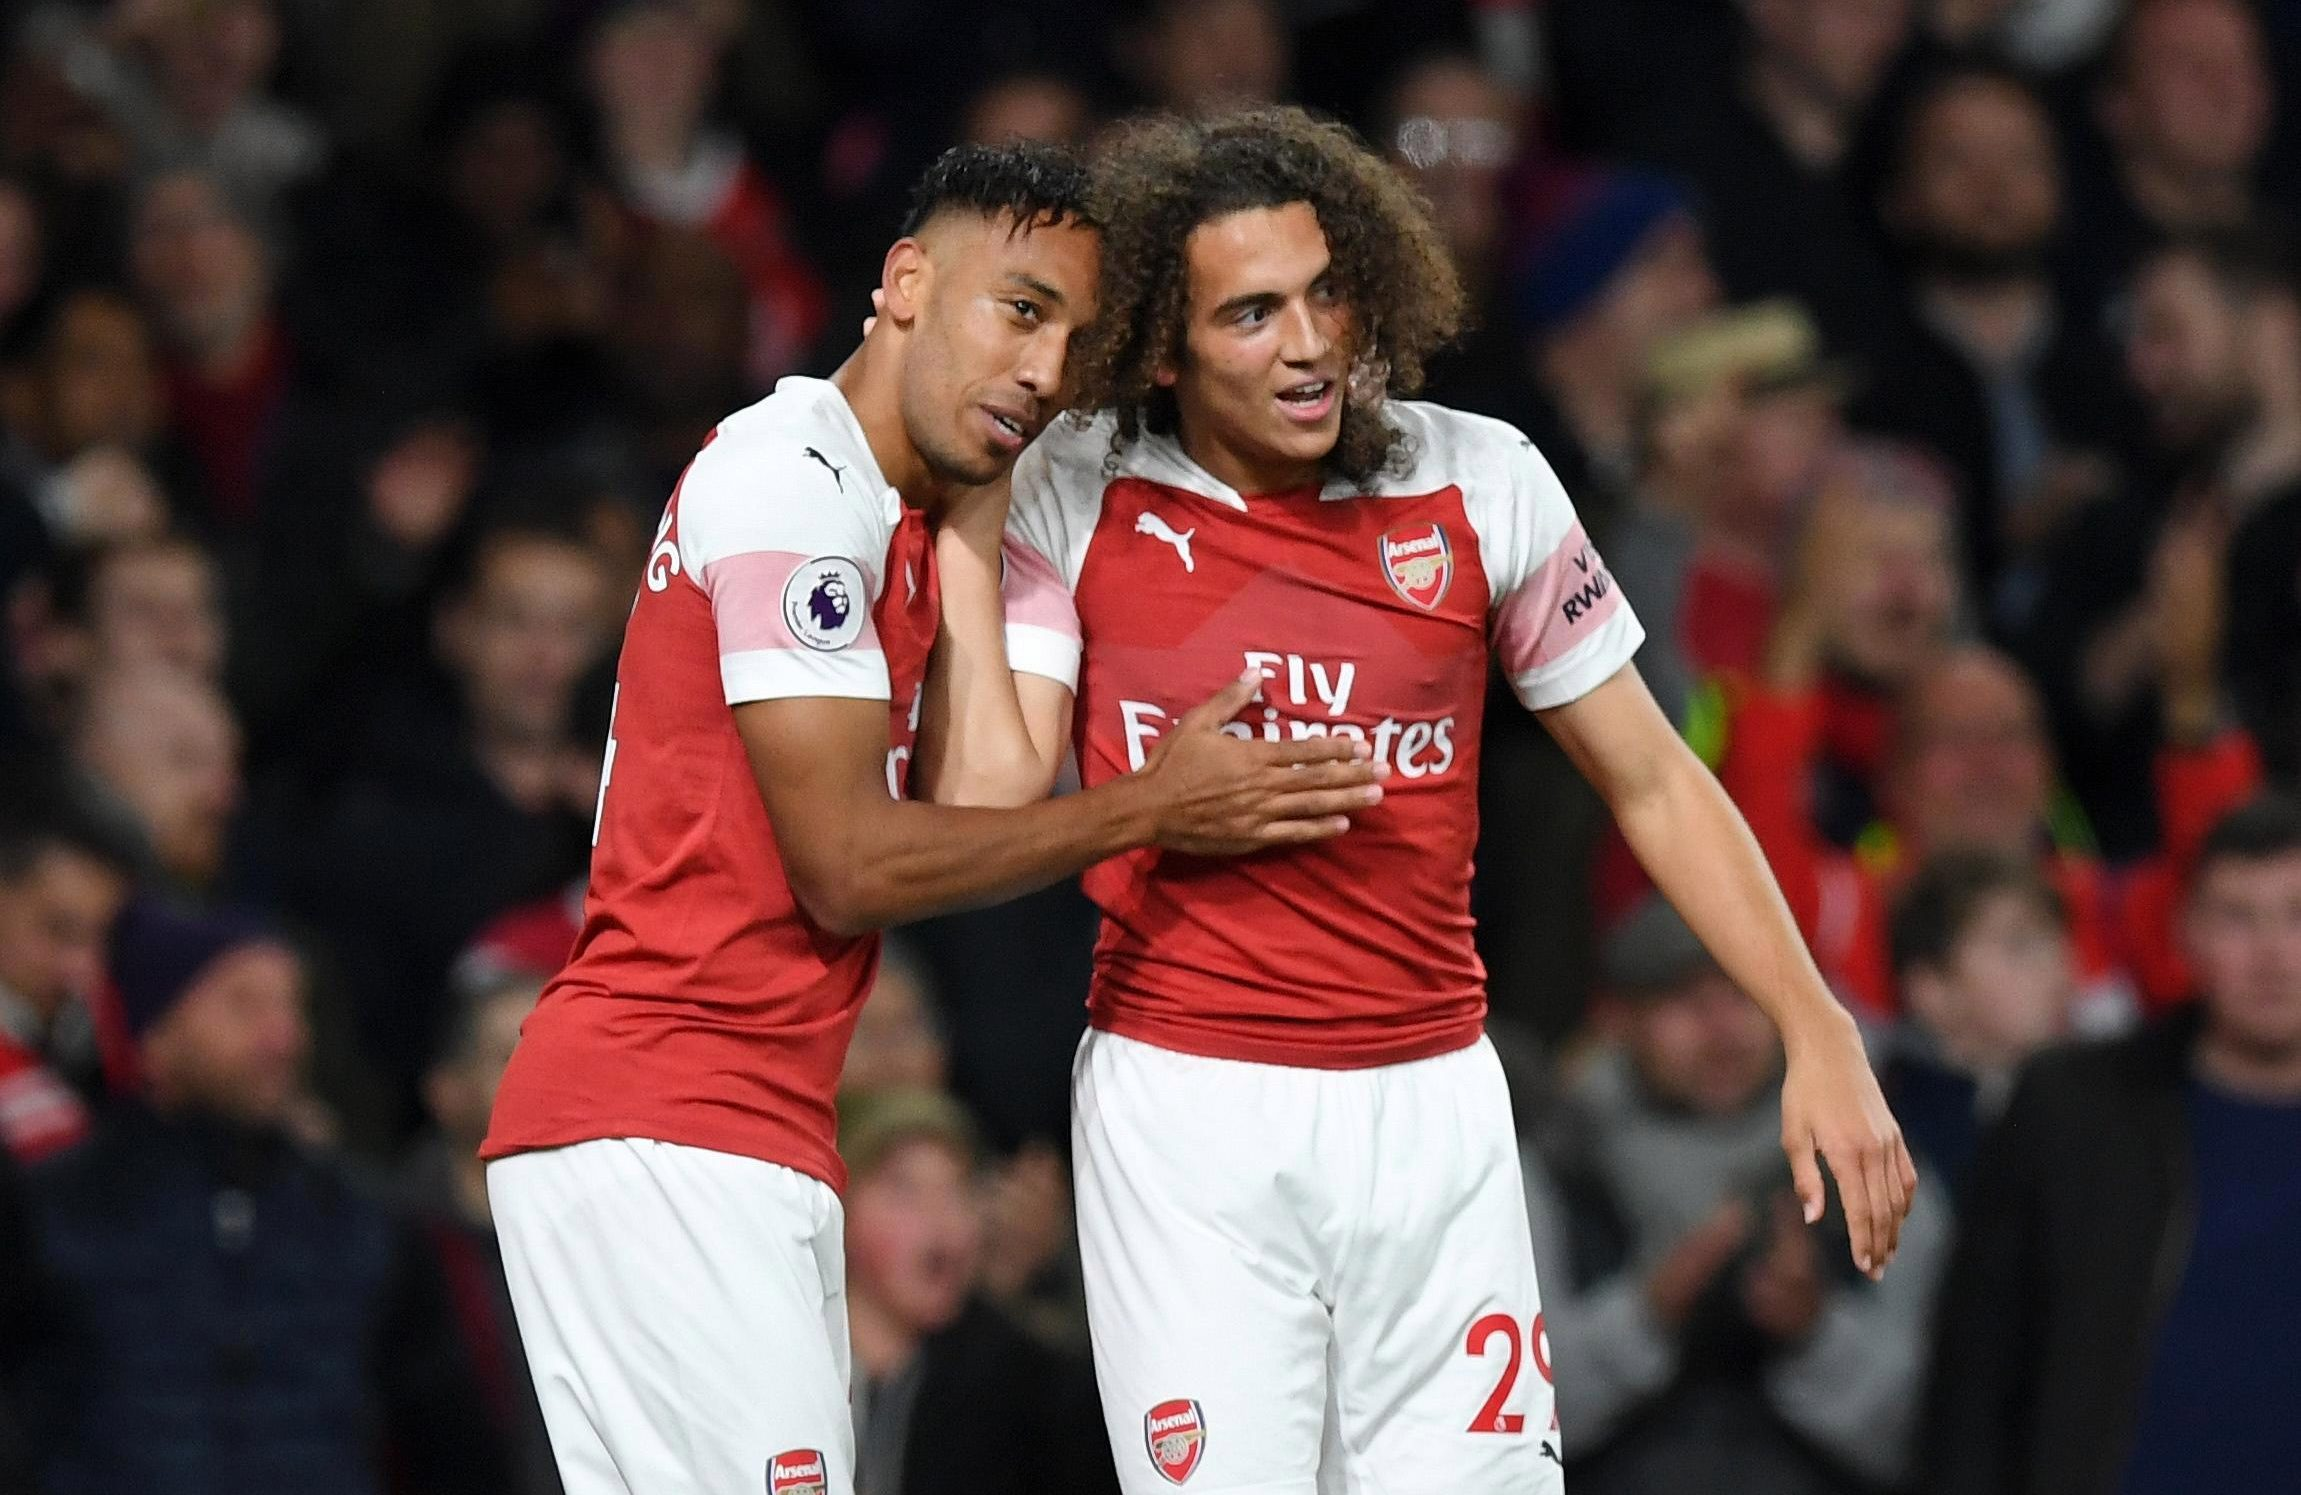 The striker came off the bench to fire the Gunners to glory